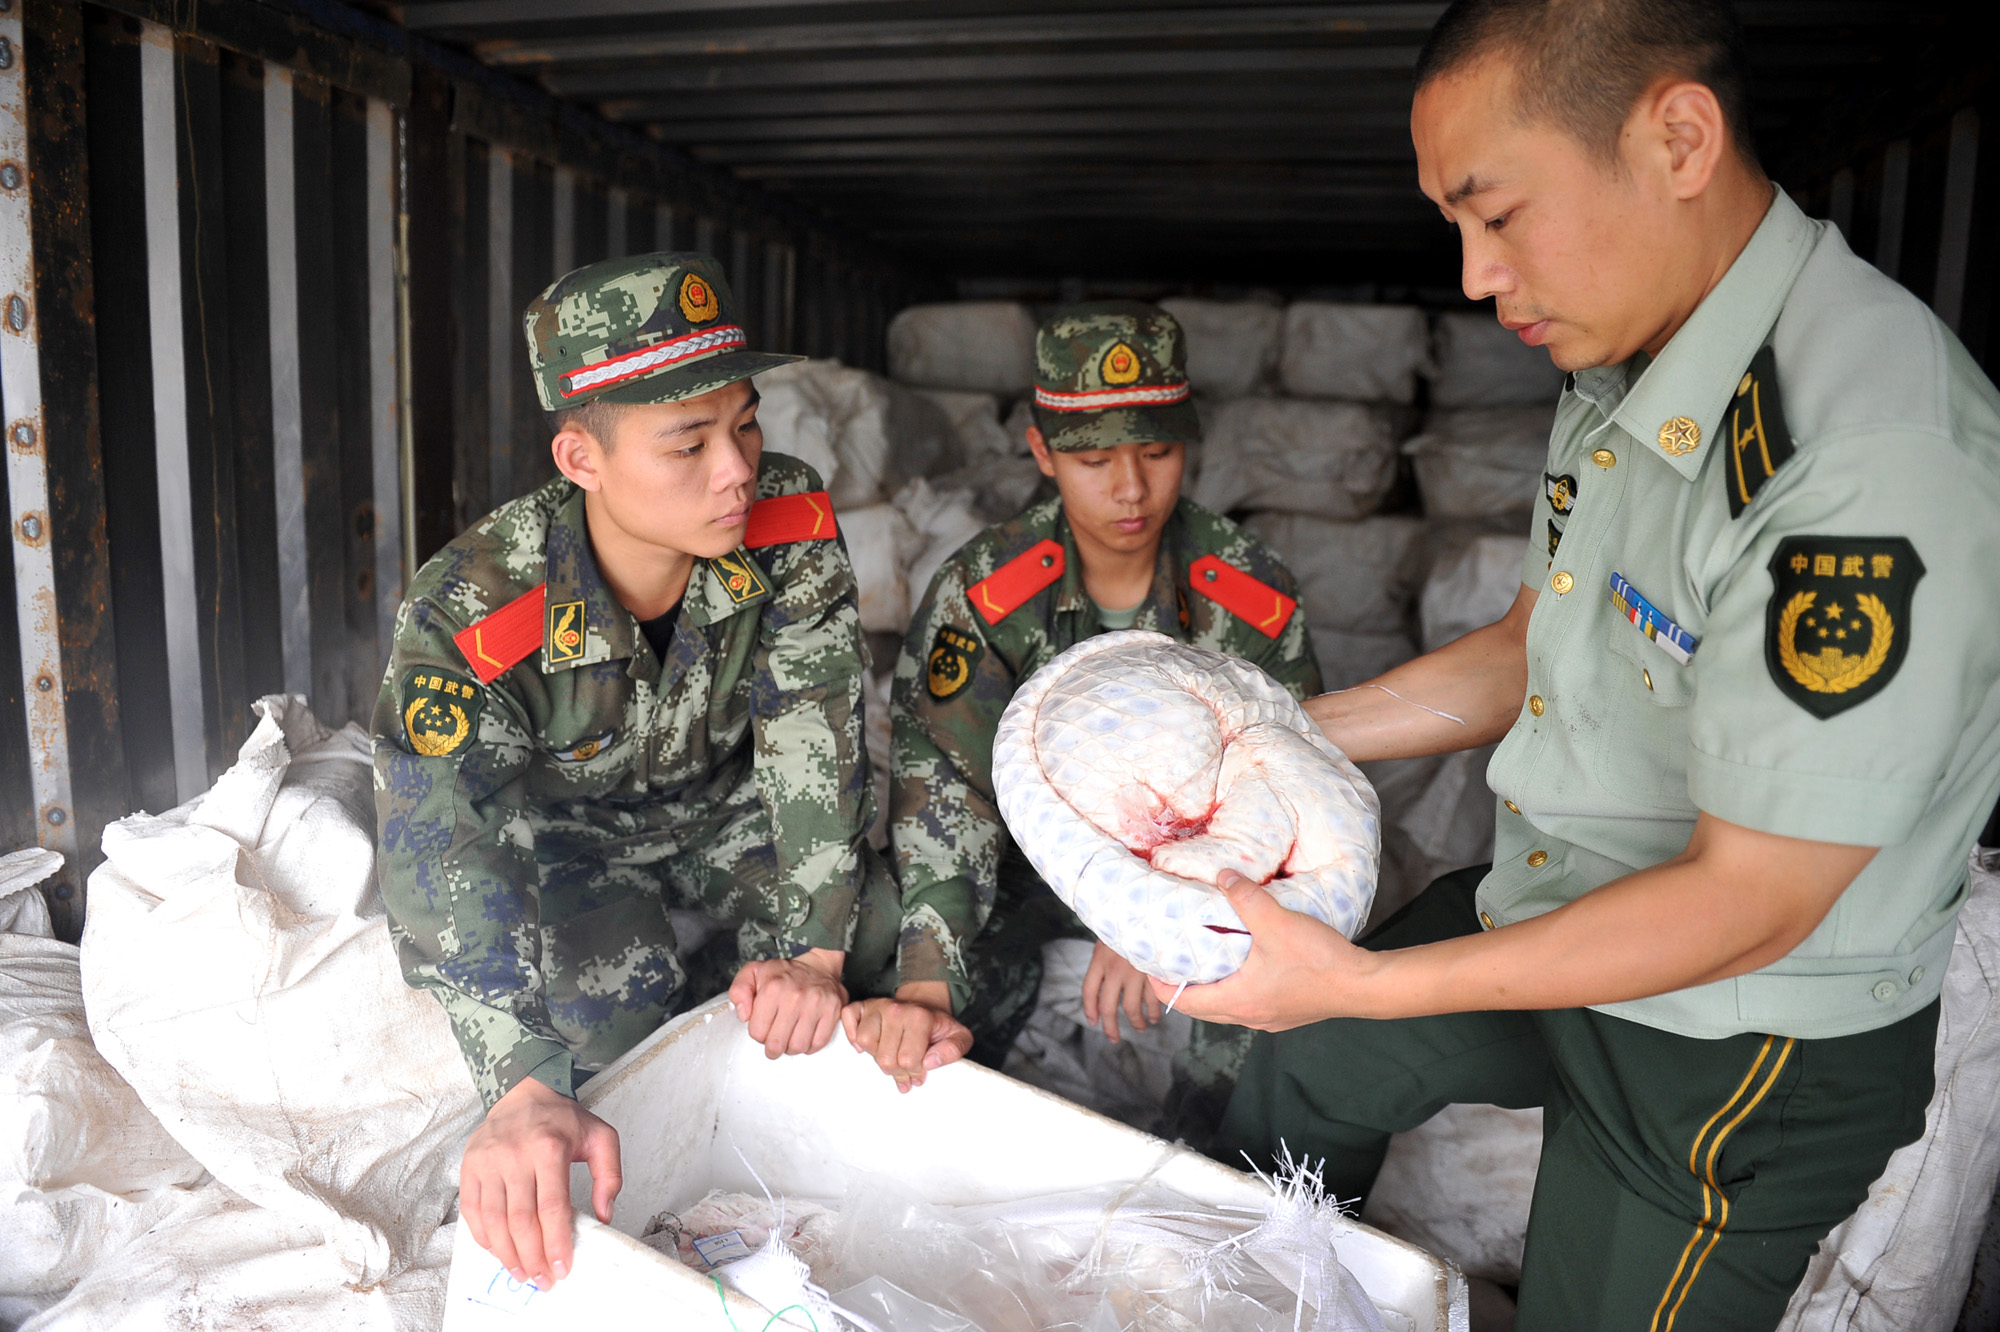 Chinese paramilitary policemen inspect pangolins seized for destruction at a plant in Zhuhai city, in southern China's Guangdong province, in May 2014